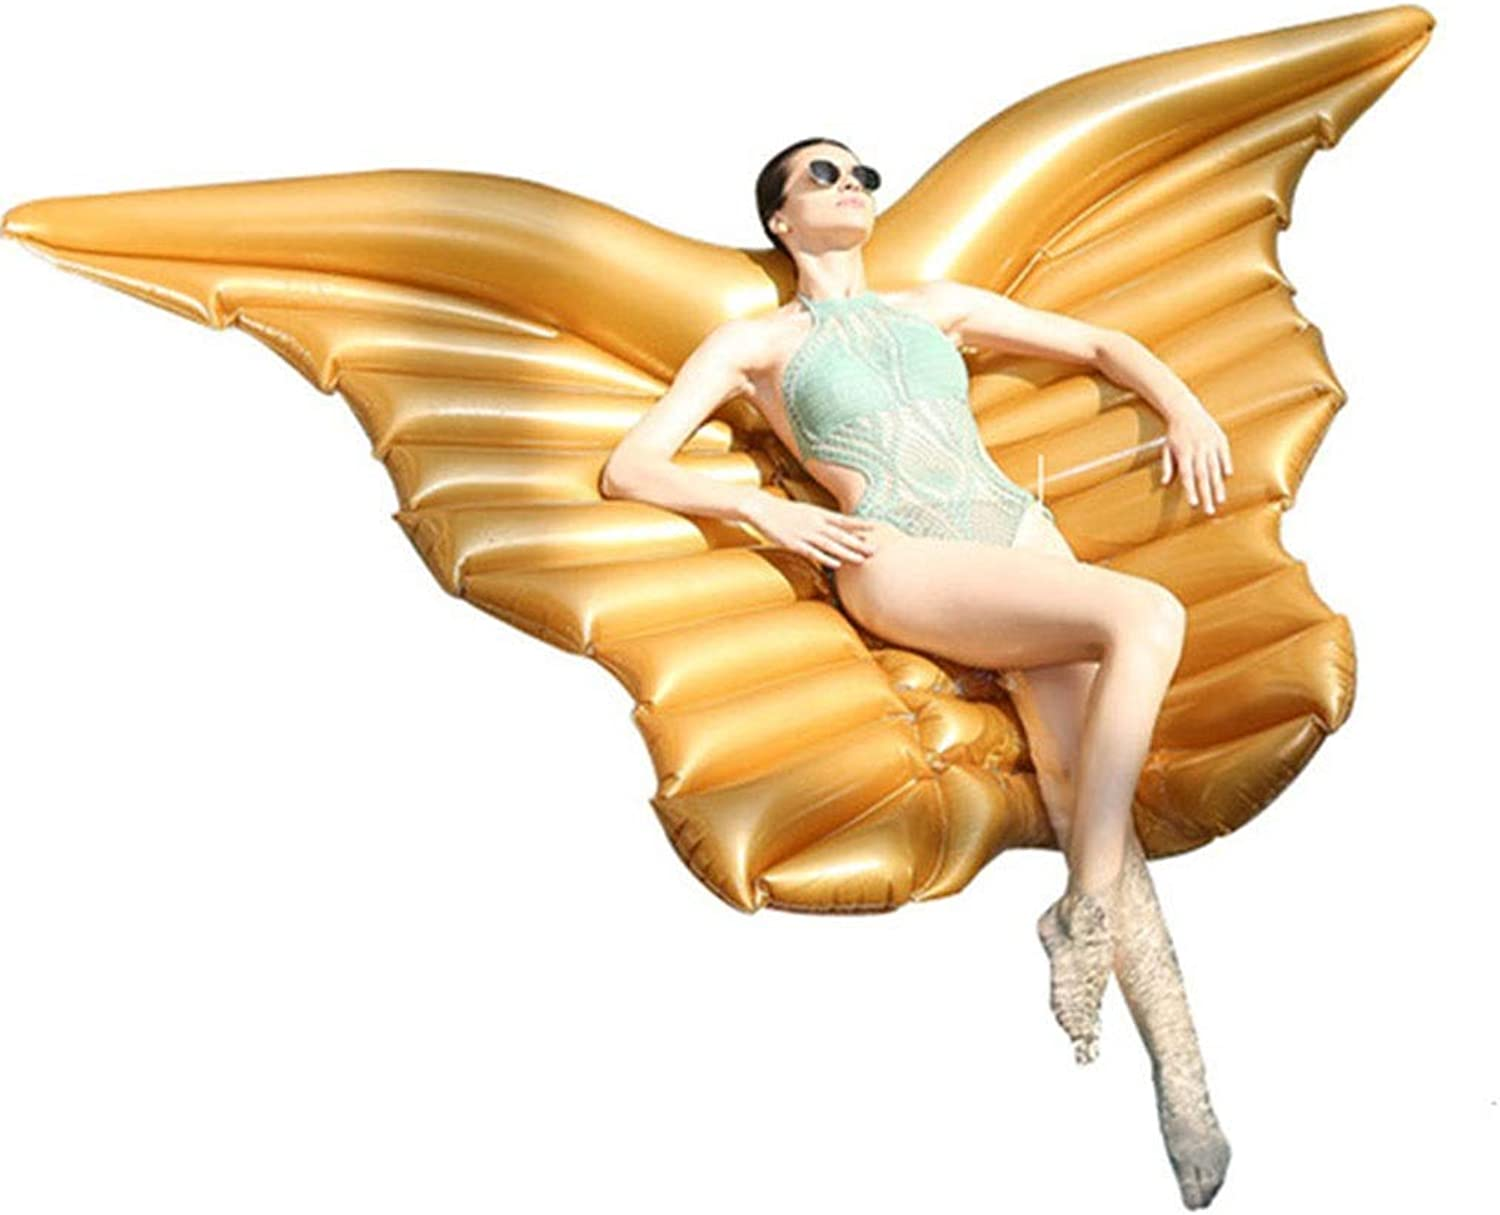 Large Inflatable Floating Row  Butterfly Swimming Ring  PVC Angel Wings Floating Drainage Inflatable Adult Floating Exhaust Pad ( color   gold )